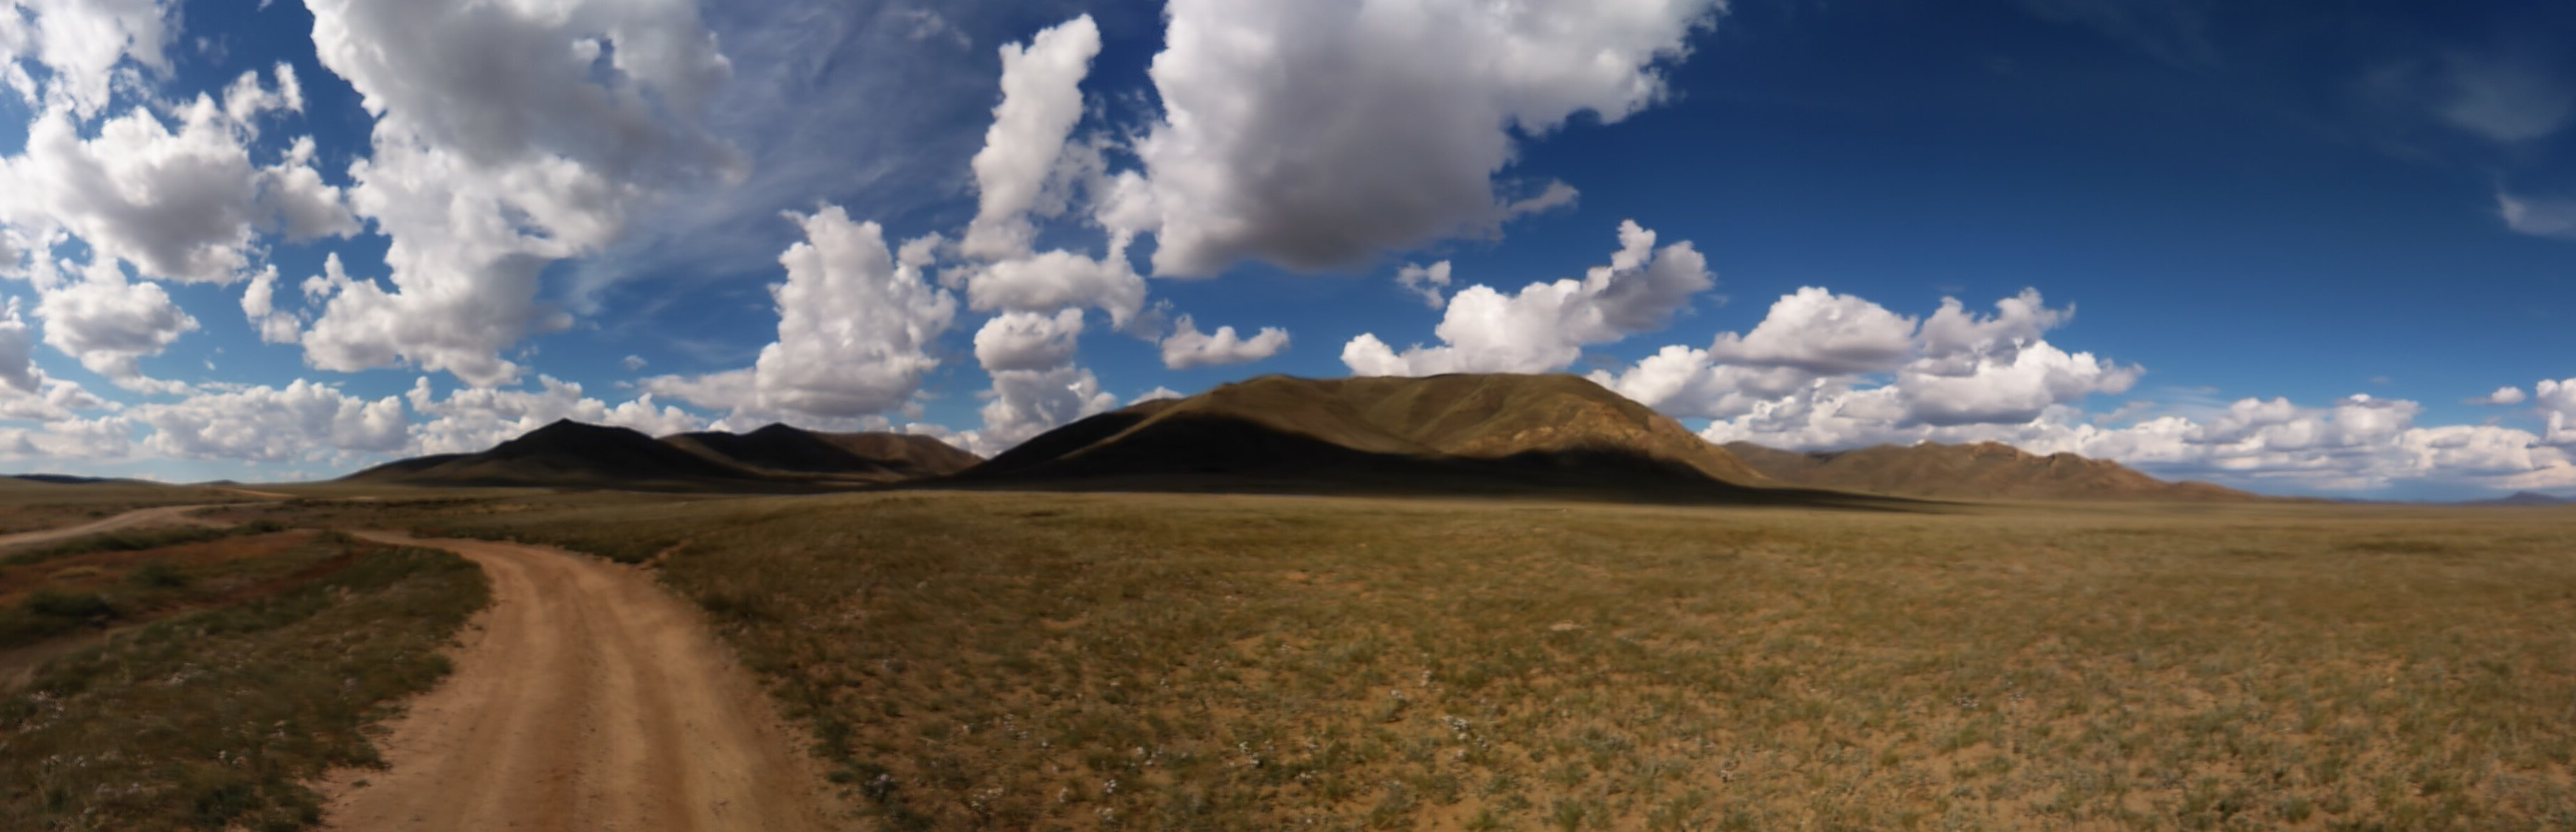 Dirt track in Mongolia